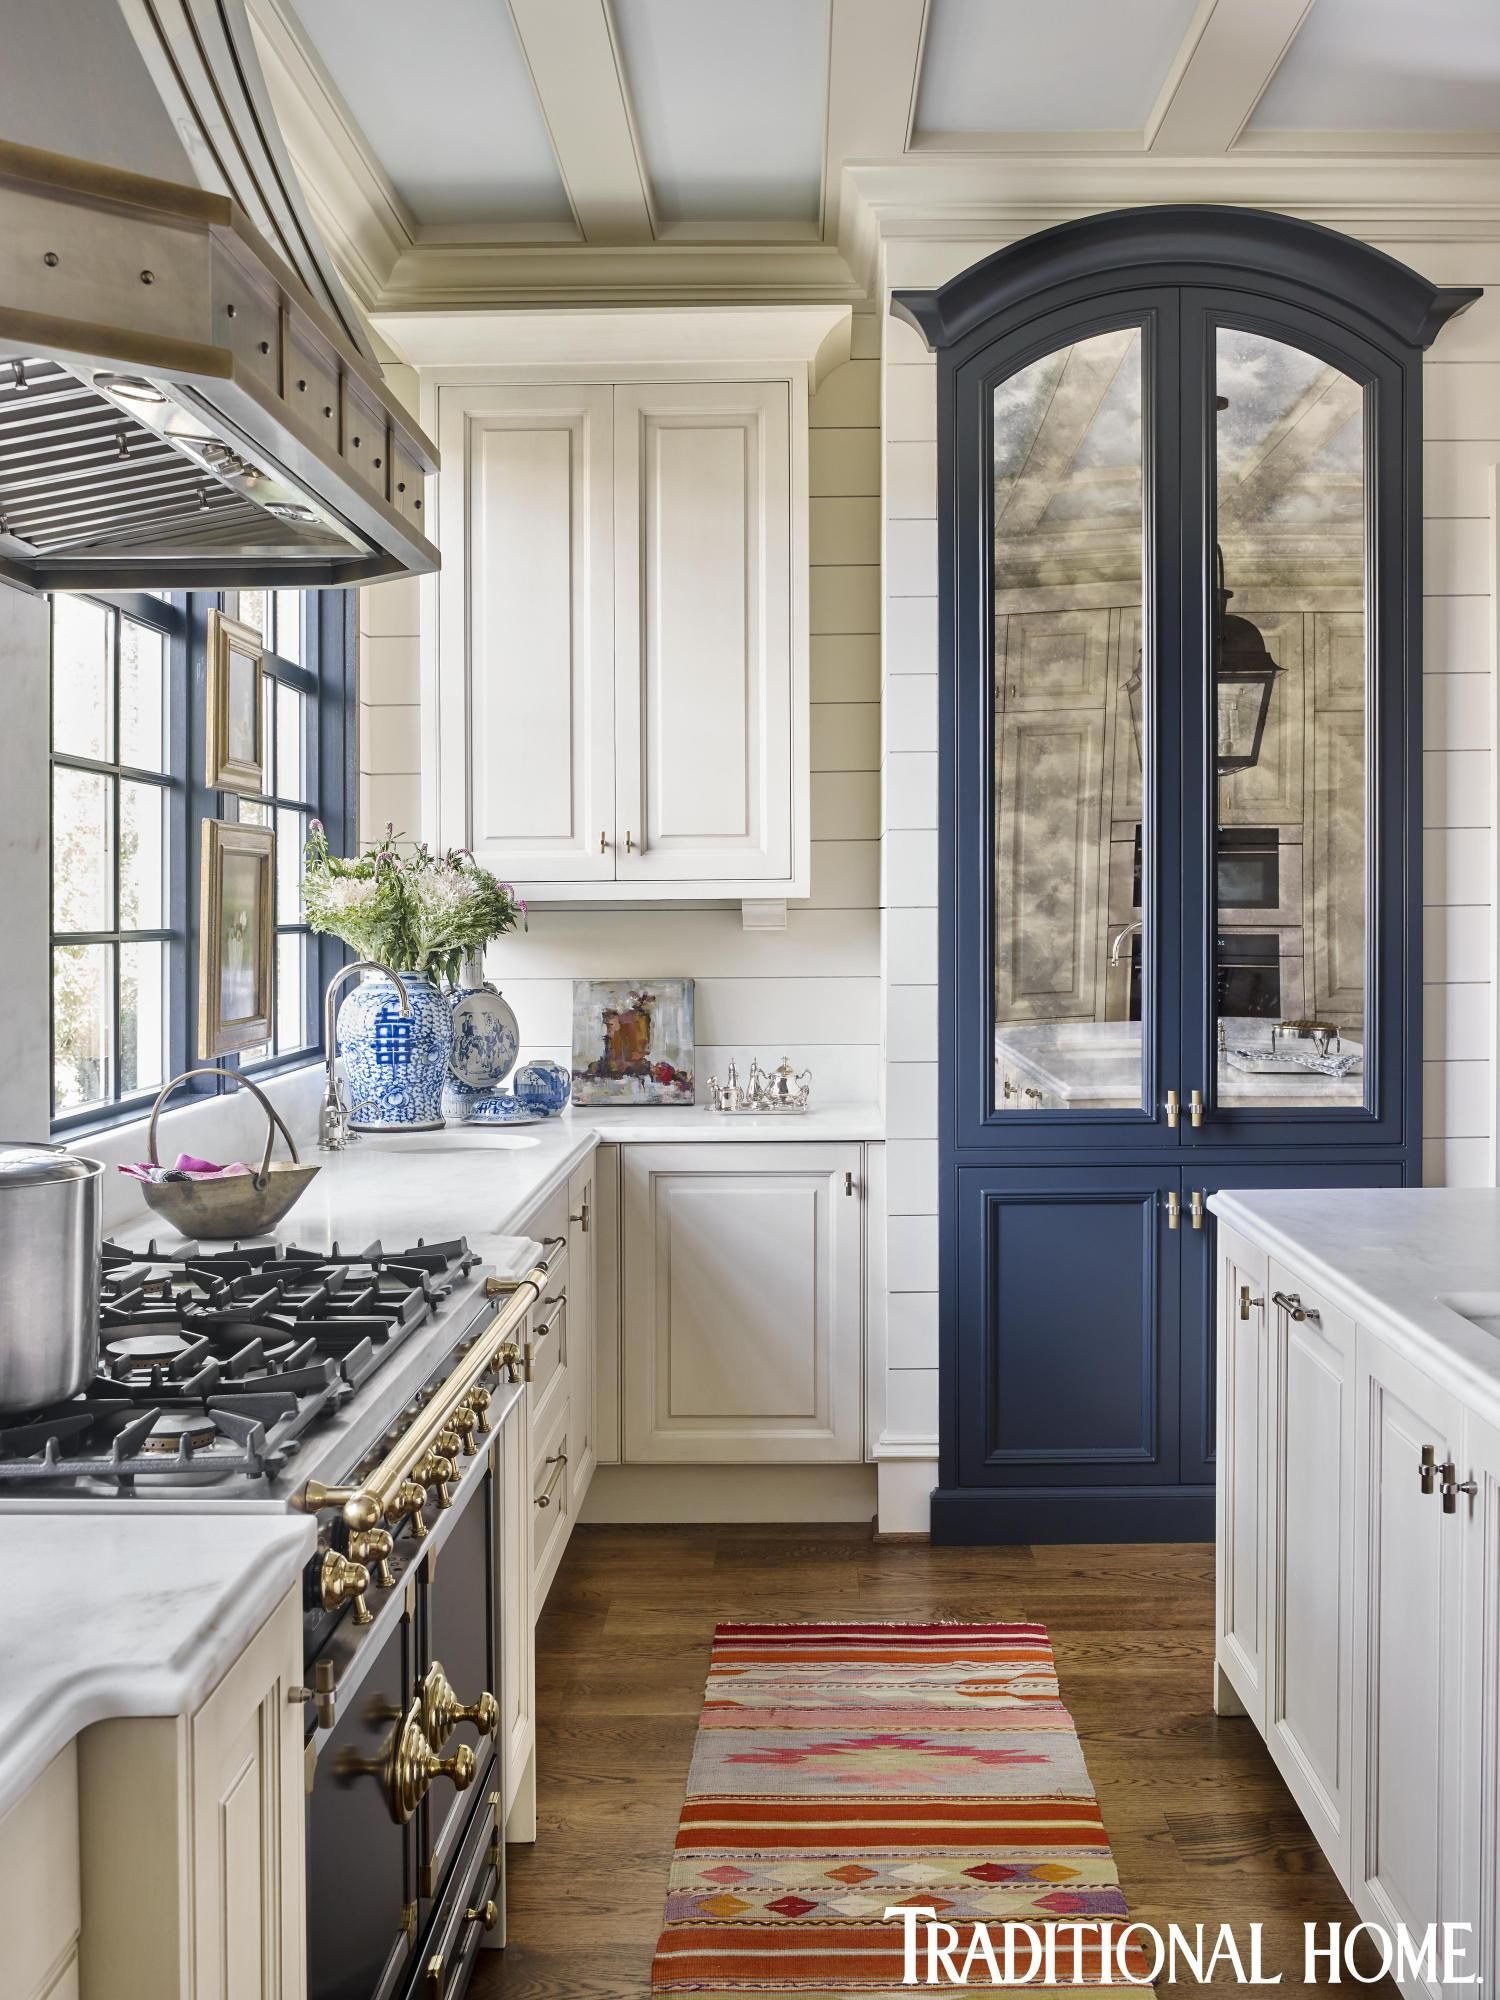 Modern Twists On The Traditional Kitchen In 2020 Kitchen Design Home Home Remodeling